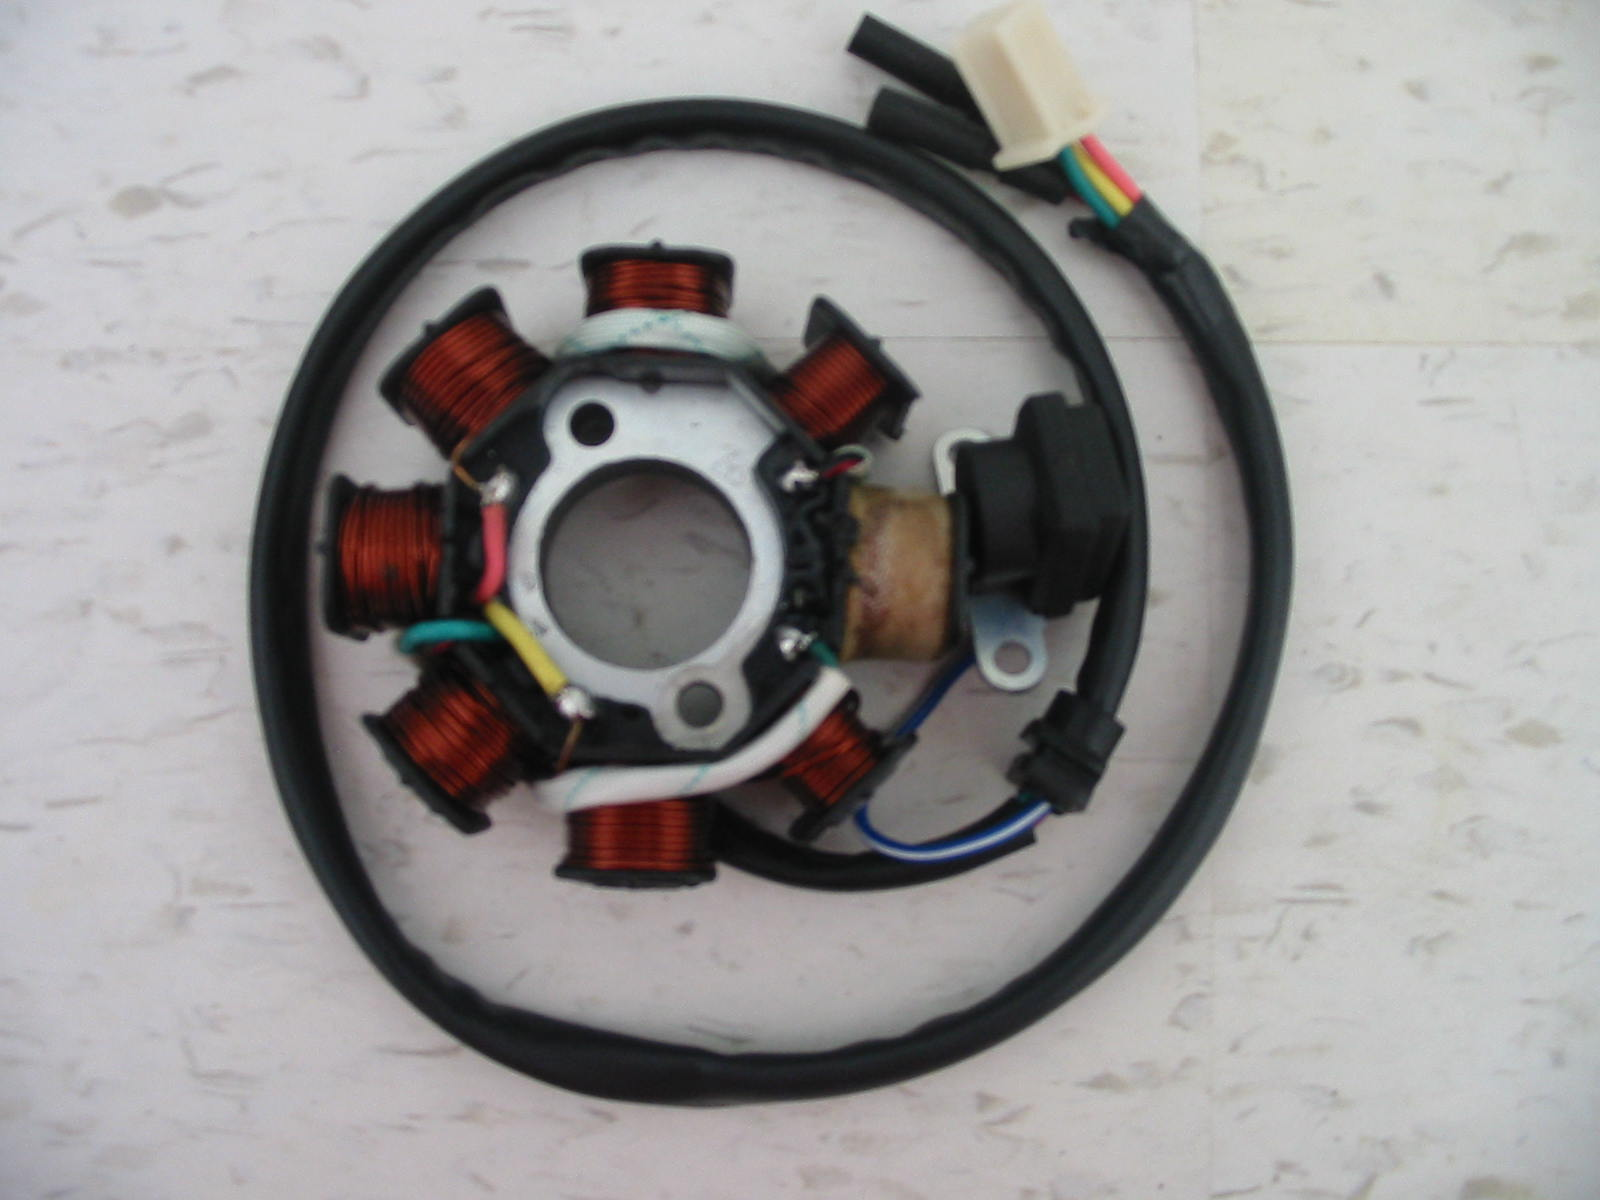 hight resolution of gy6 stator unit buggydepot com 150cc knowledgebase gy6 stator wiring diagram